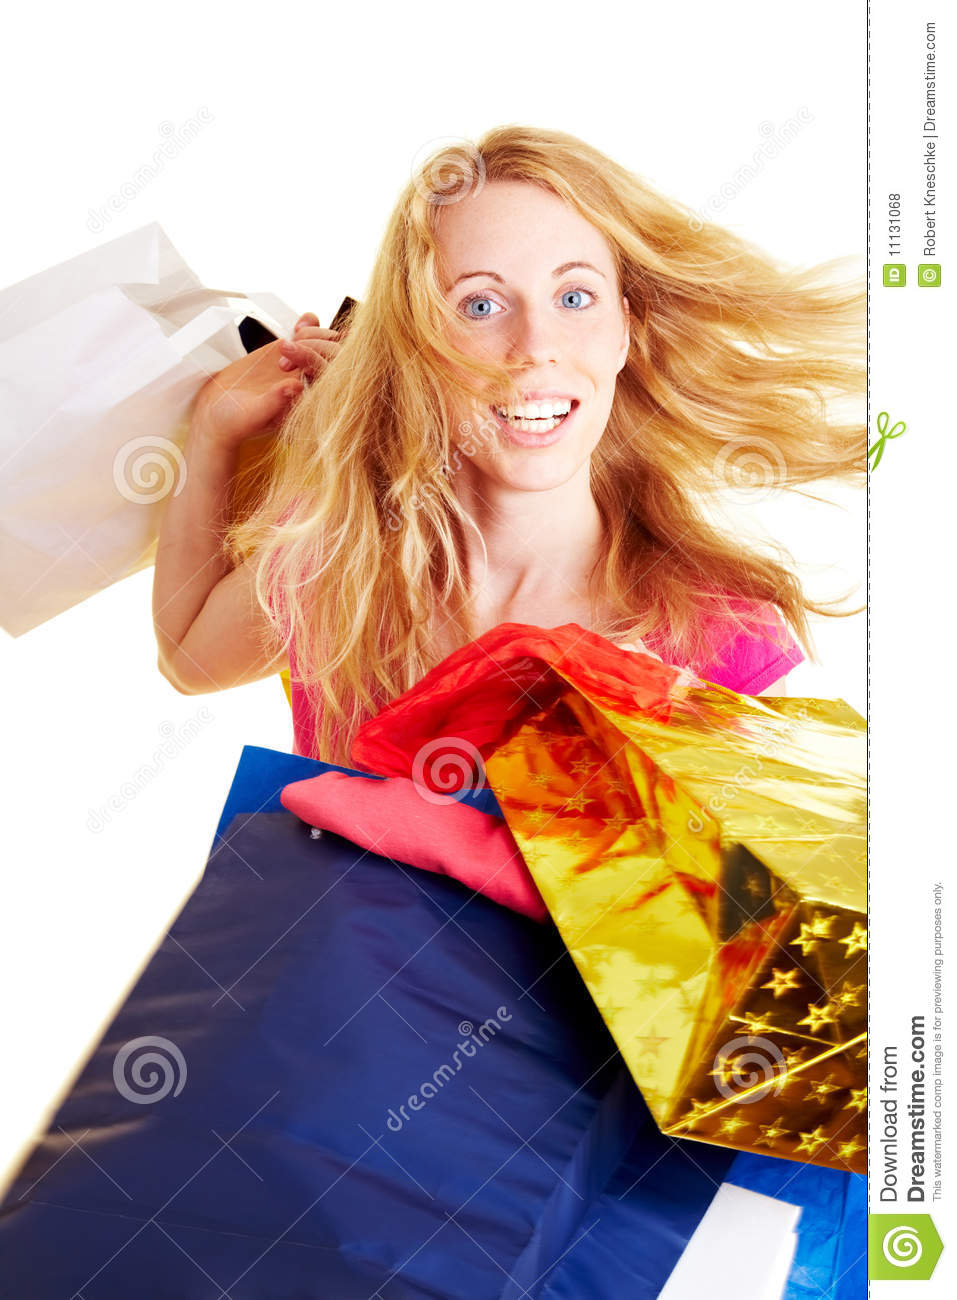 Turning and shopping